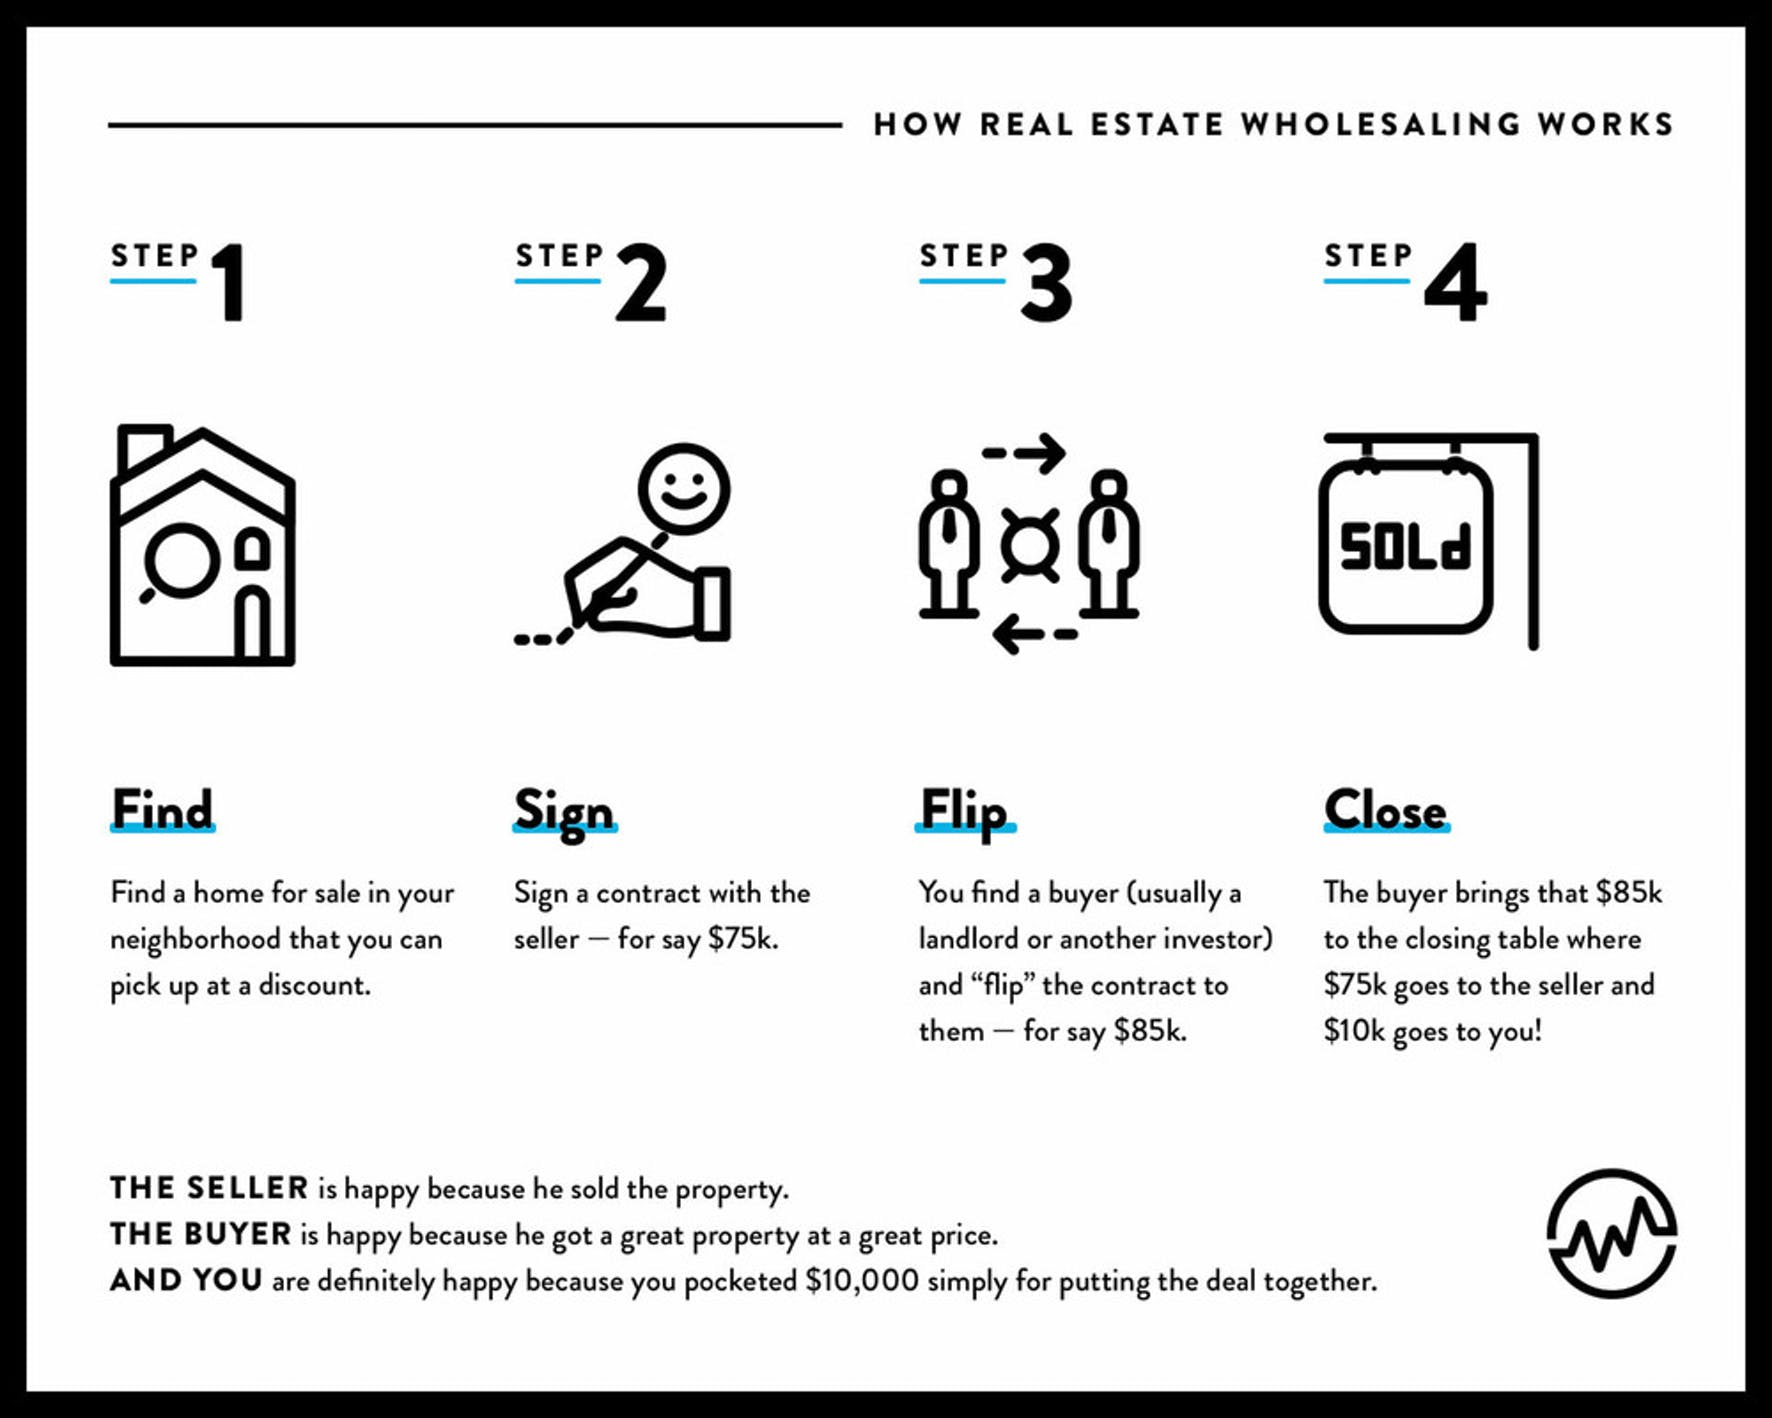 How real estate wholesaling works